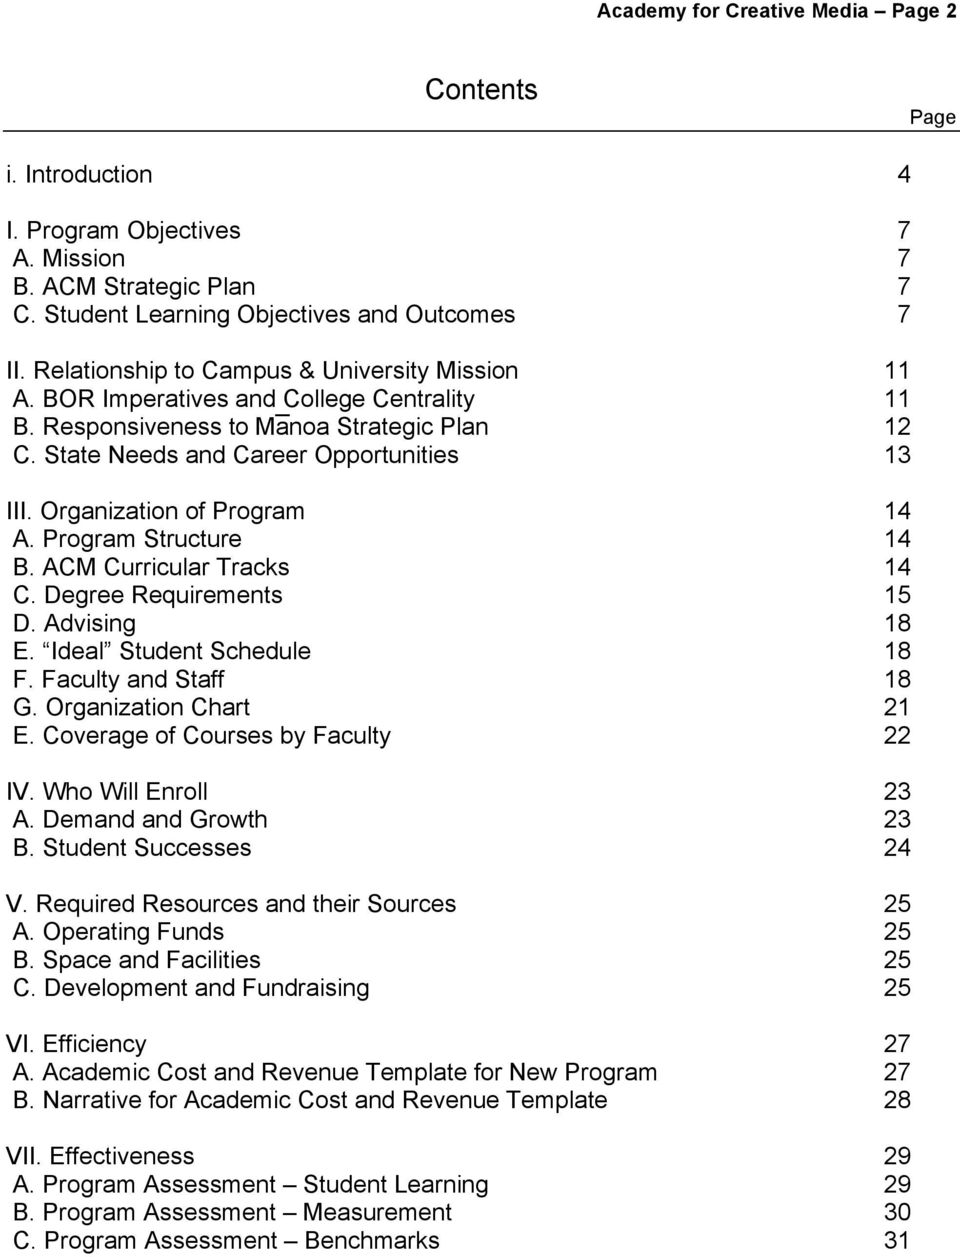 Organization of Program 14 A. Program Structure 14 B. ACM Curricular Tracks 14 C. Degree Requirements 15 D. Advising 18 E. Ideal Student Schedule 18 F. Faculty and Staff 18 G. Organization Chart 21 E.